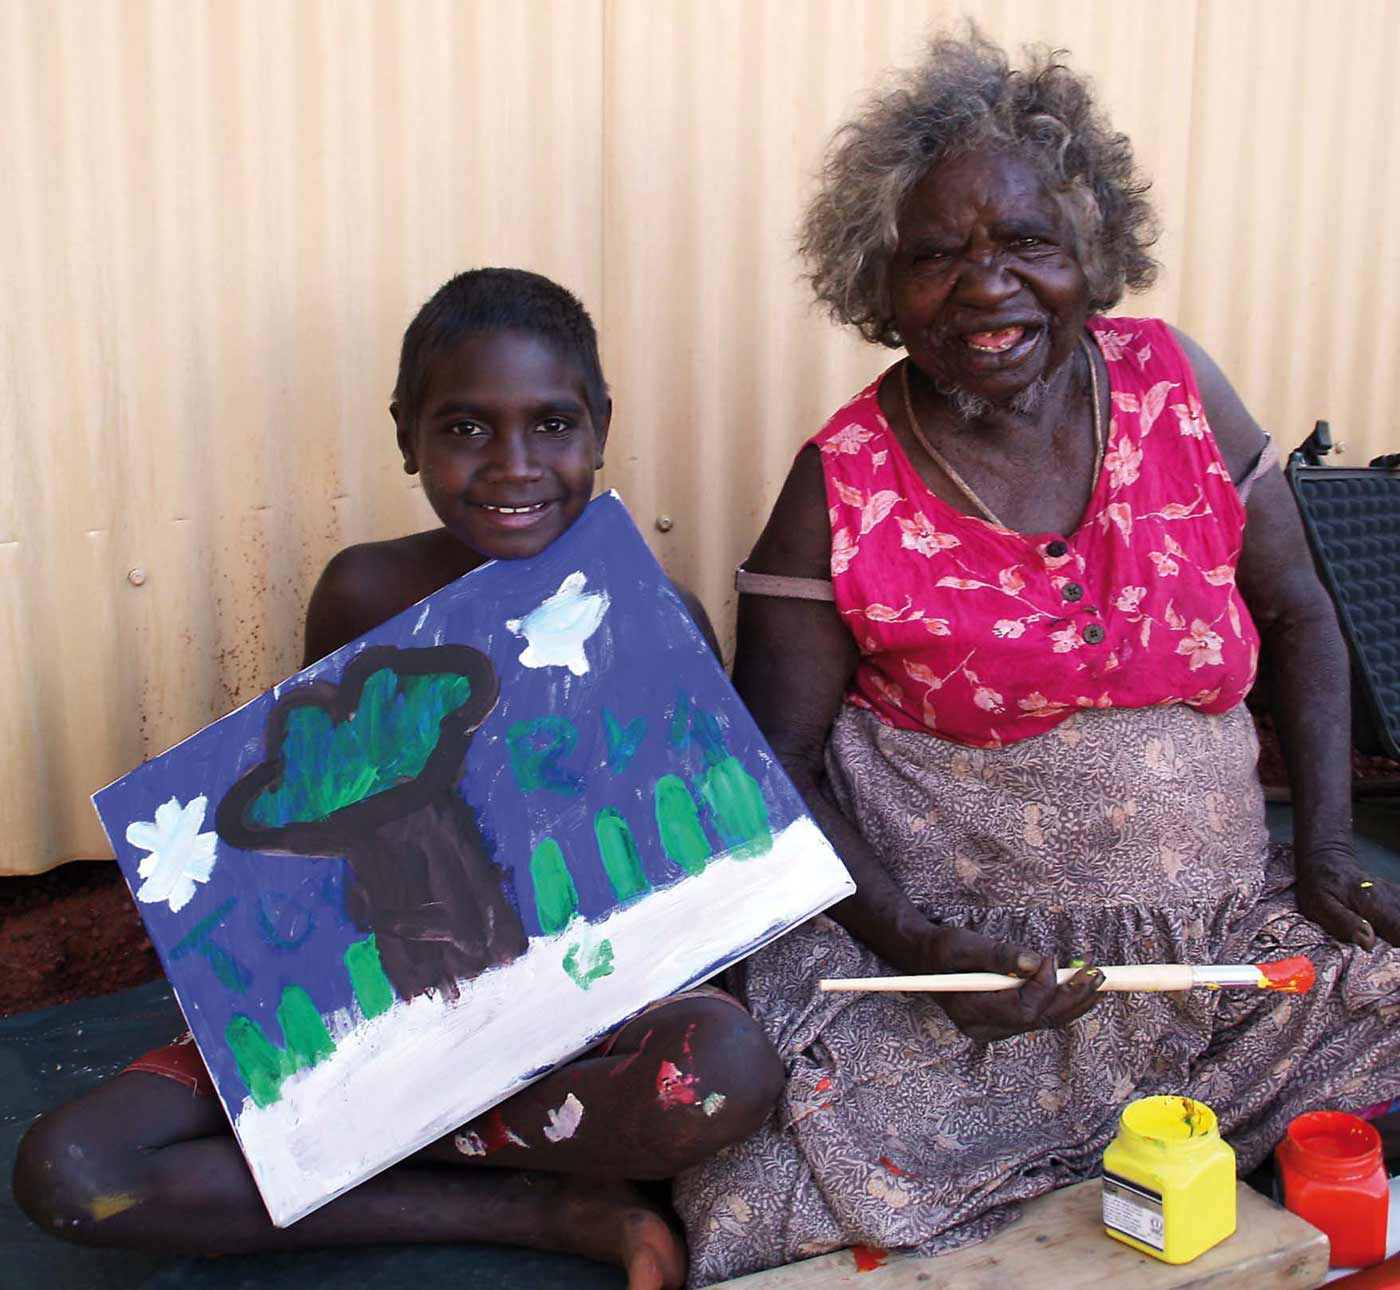 Colour photograph of an elderly woman sitting next to a young boy who is holding a painting. - click to view larger image